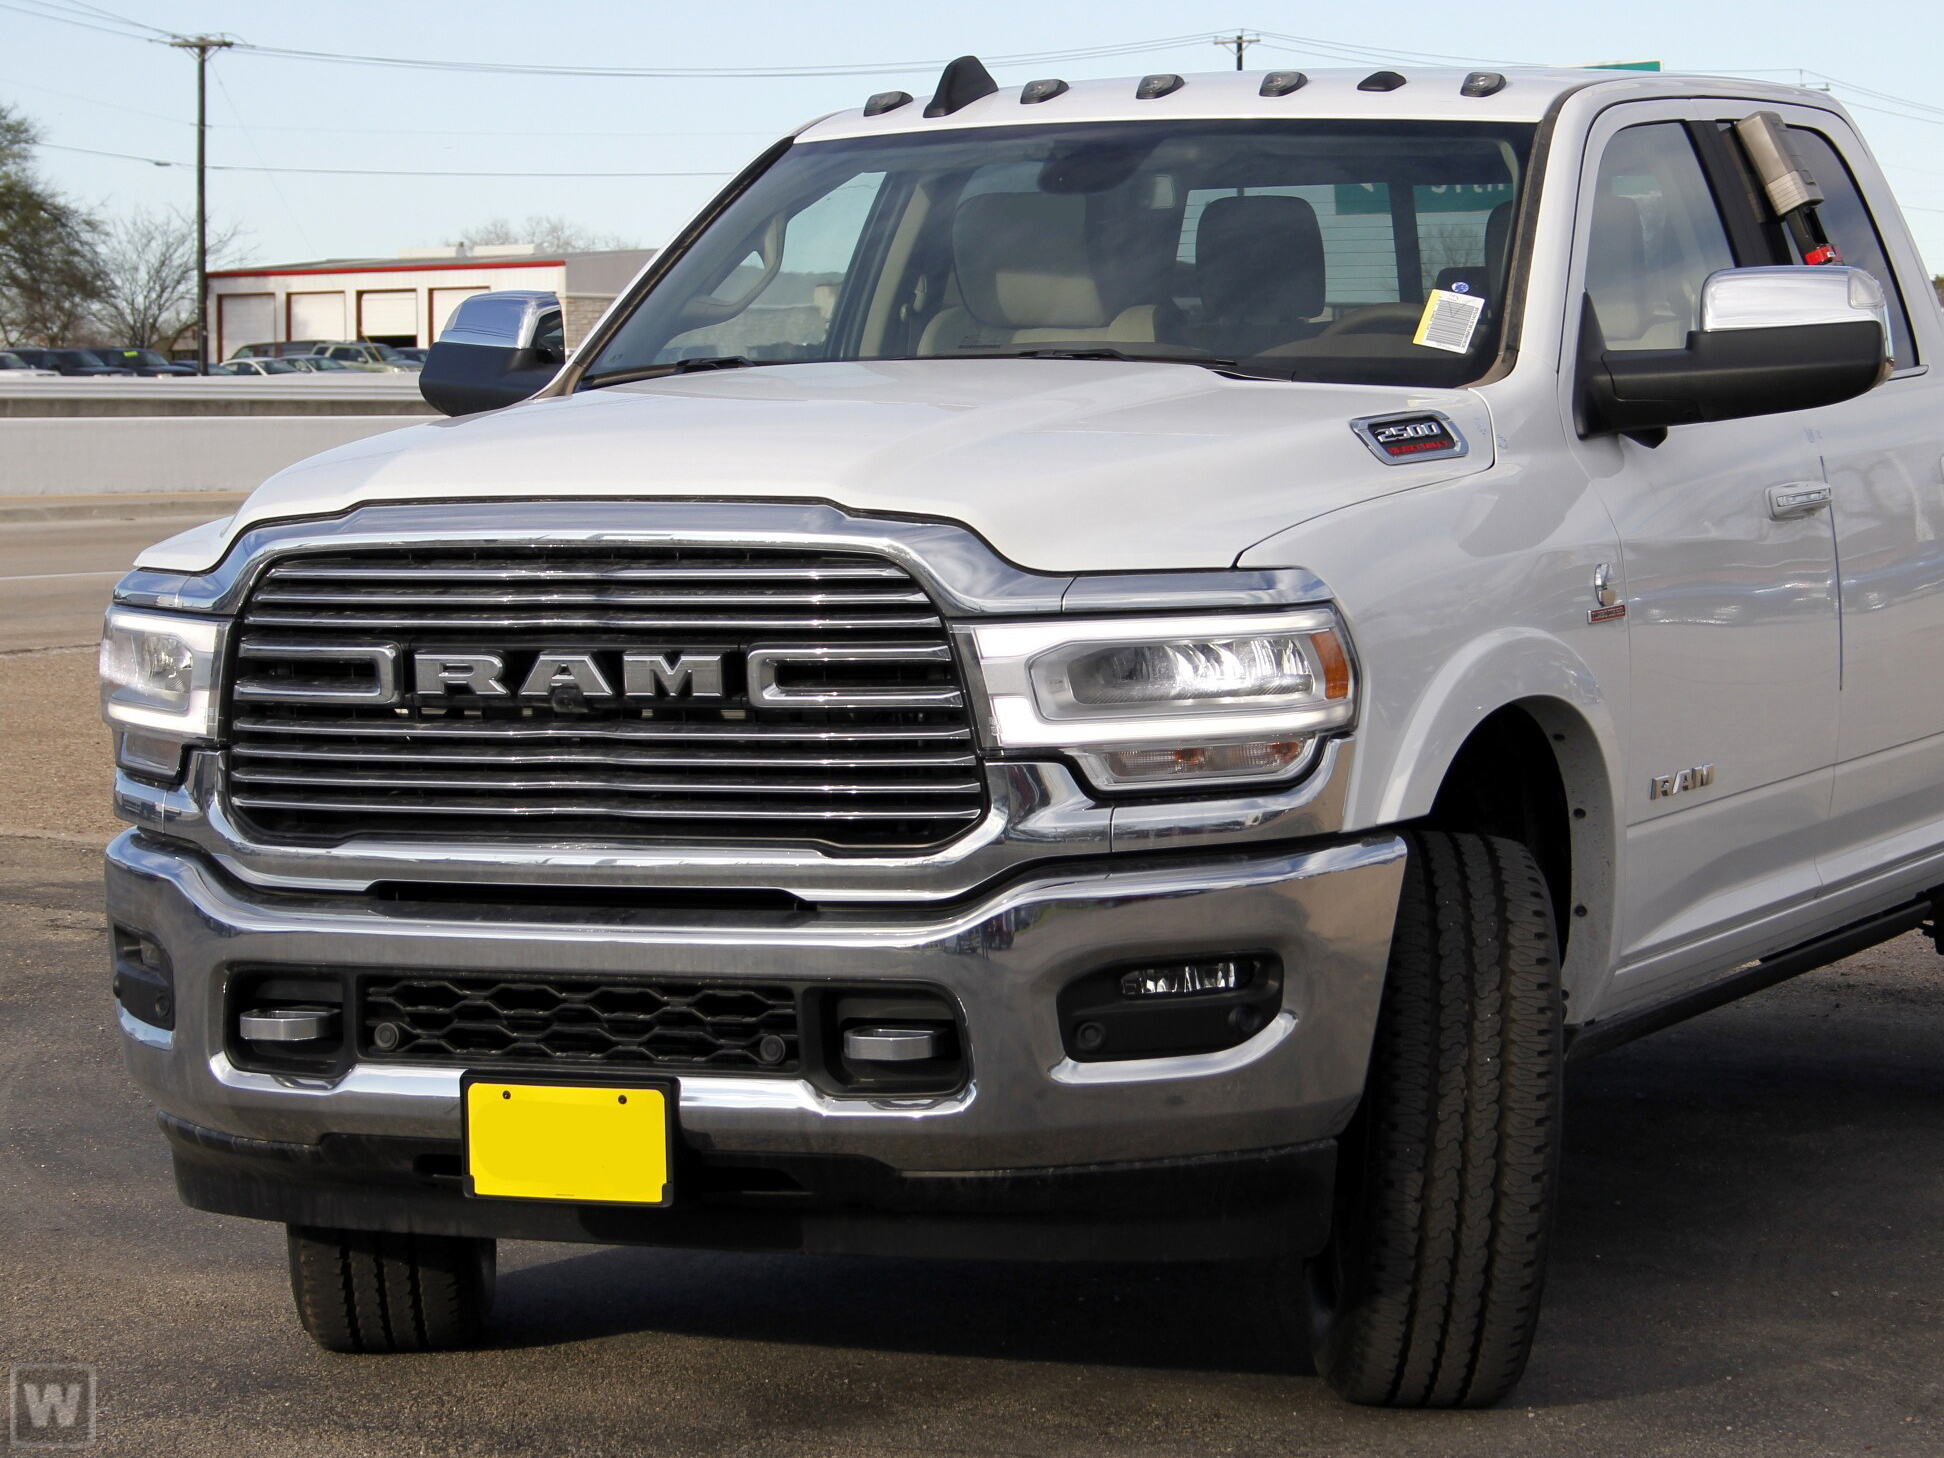 2020 Ram 2500 Crew Cab 4x4, Pickup #6200027 - photo 1